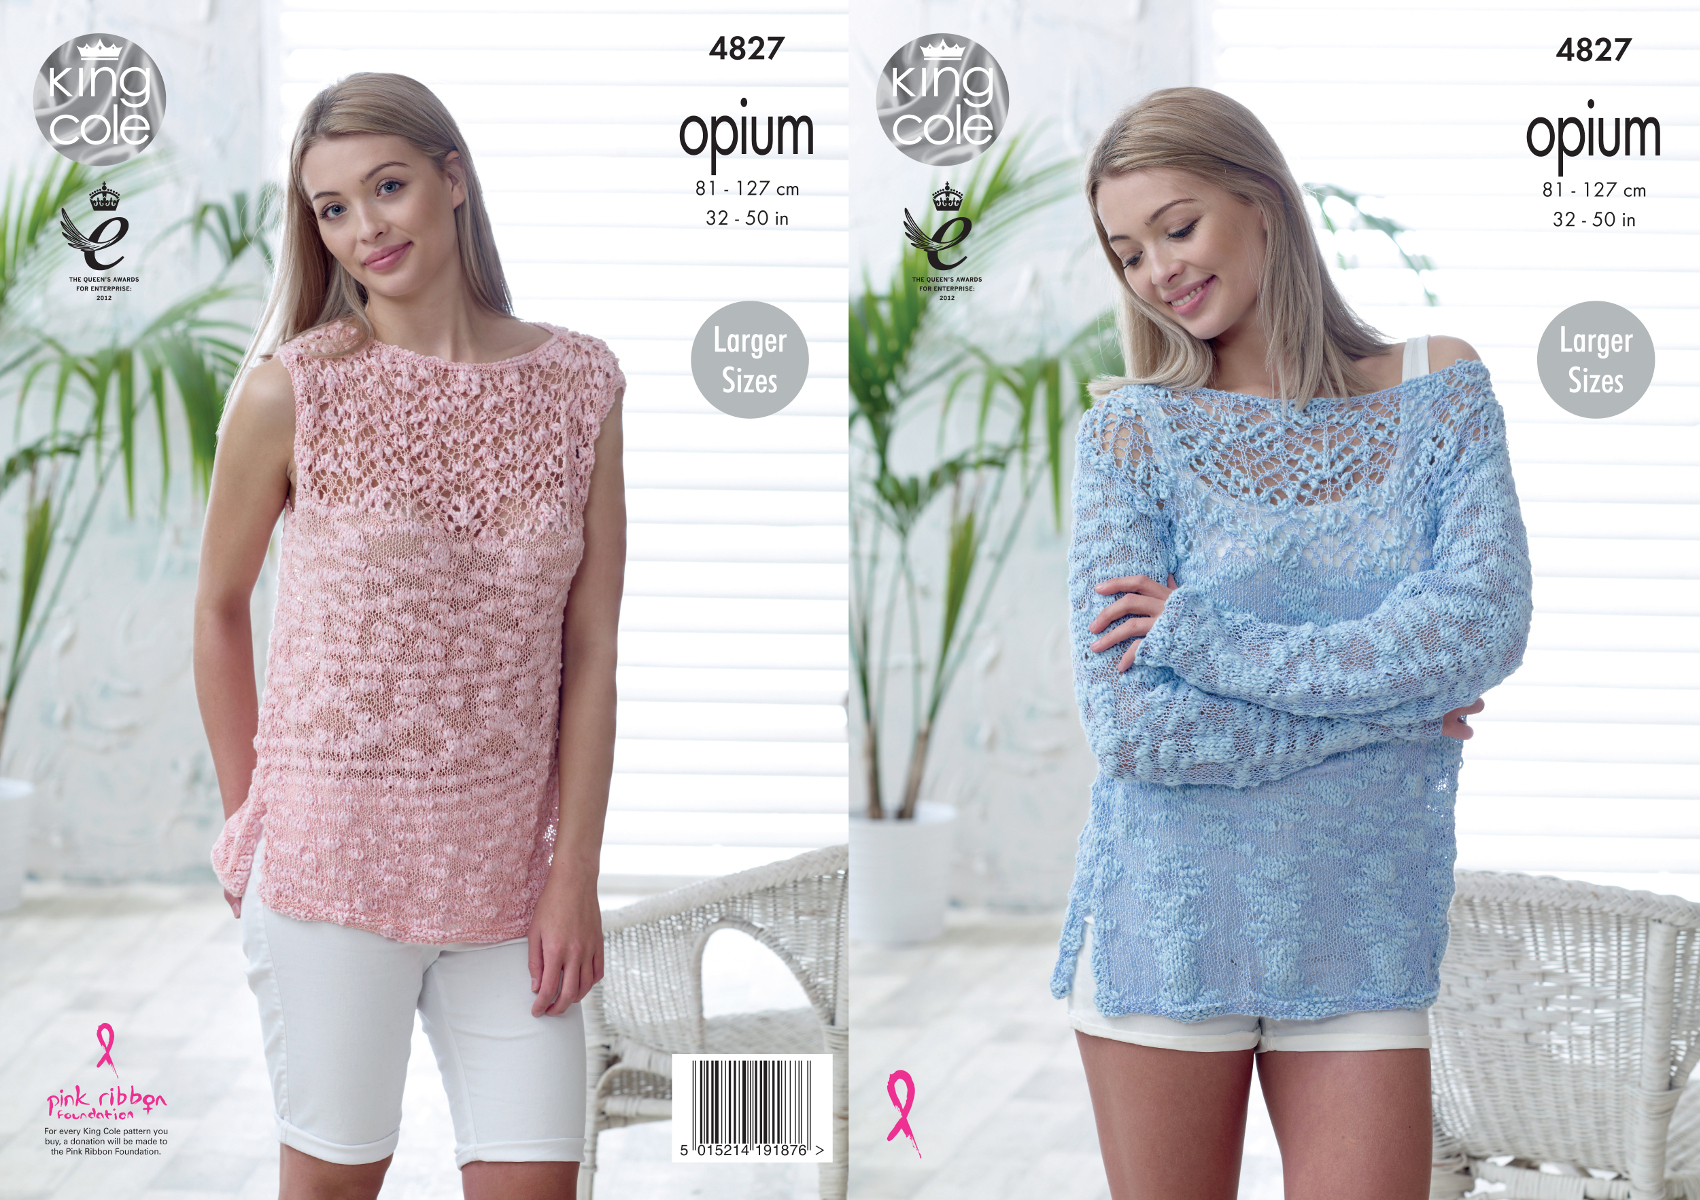 King Cole Womens Opium Knitting Pattern Off Shoulder Sweater ...